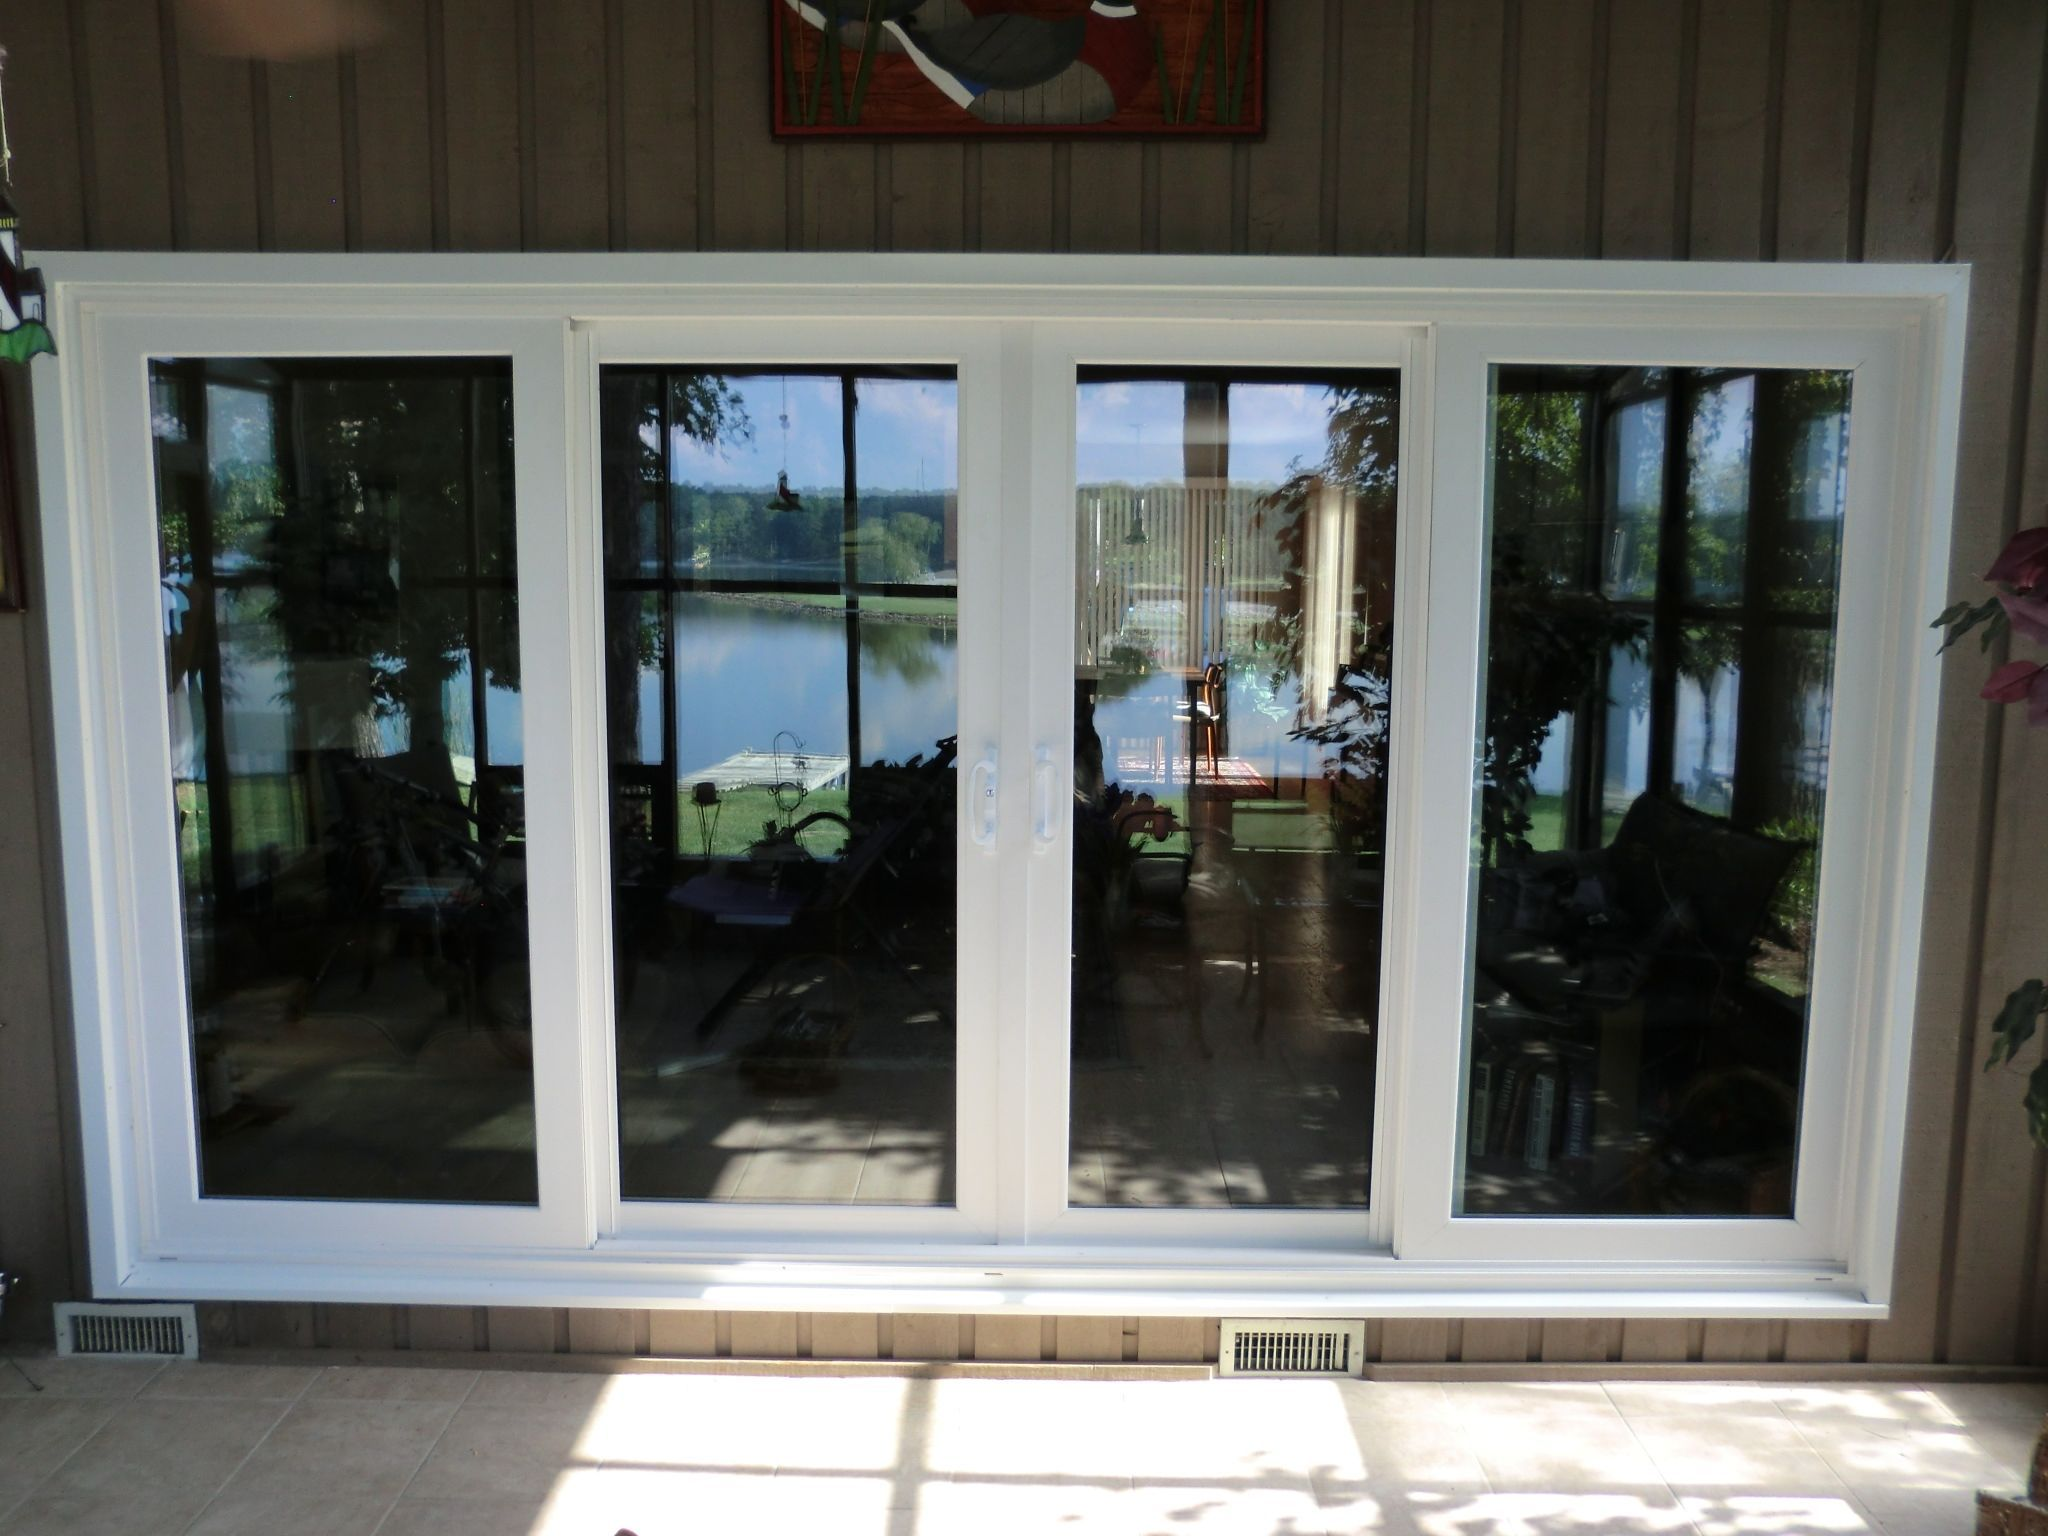 Sliding Patio Doors With Side Panels Sliding Doors Exterior Sliding French Doors Sliding Patio Doors